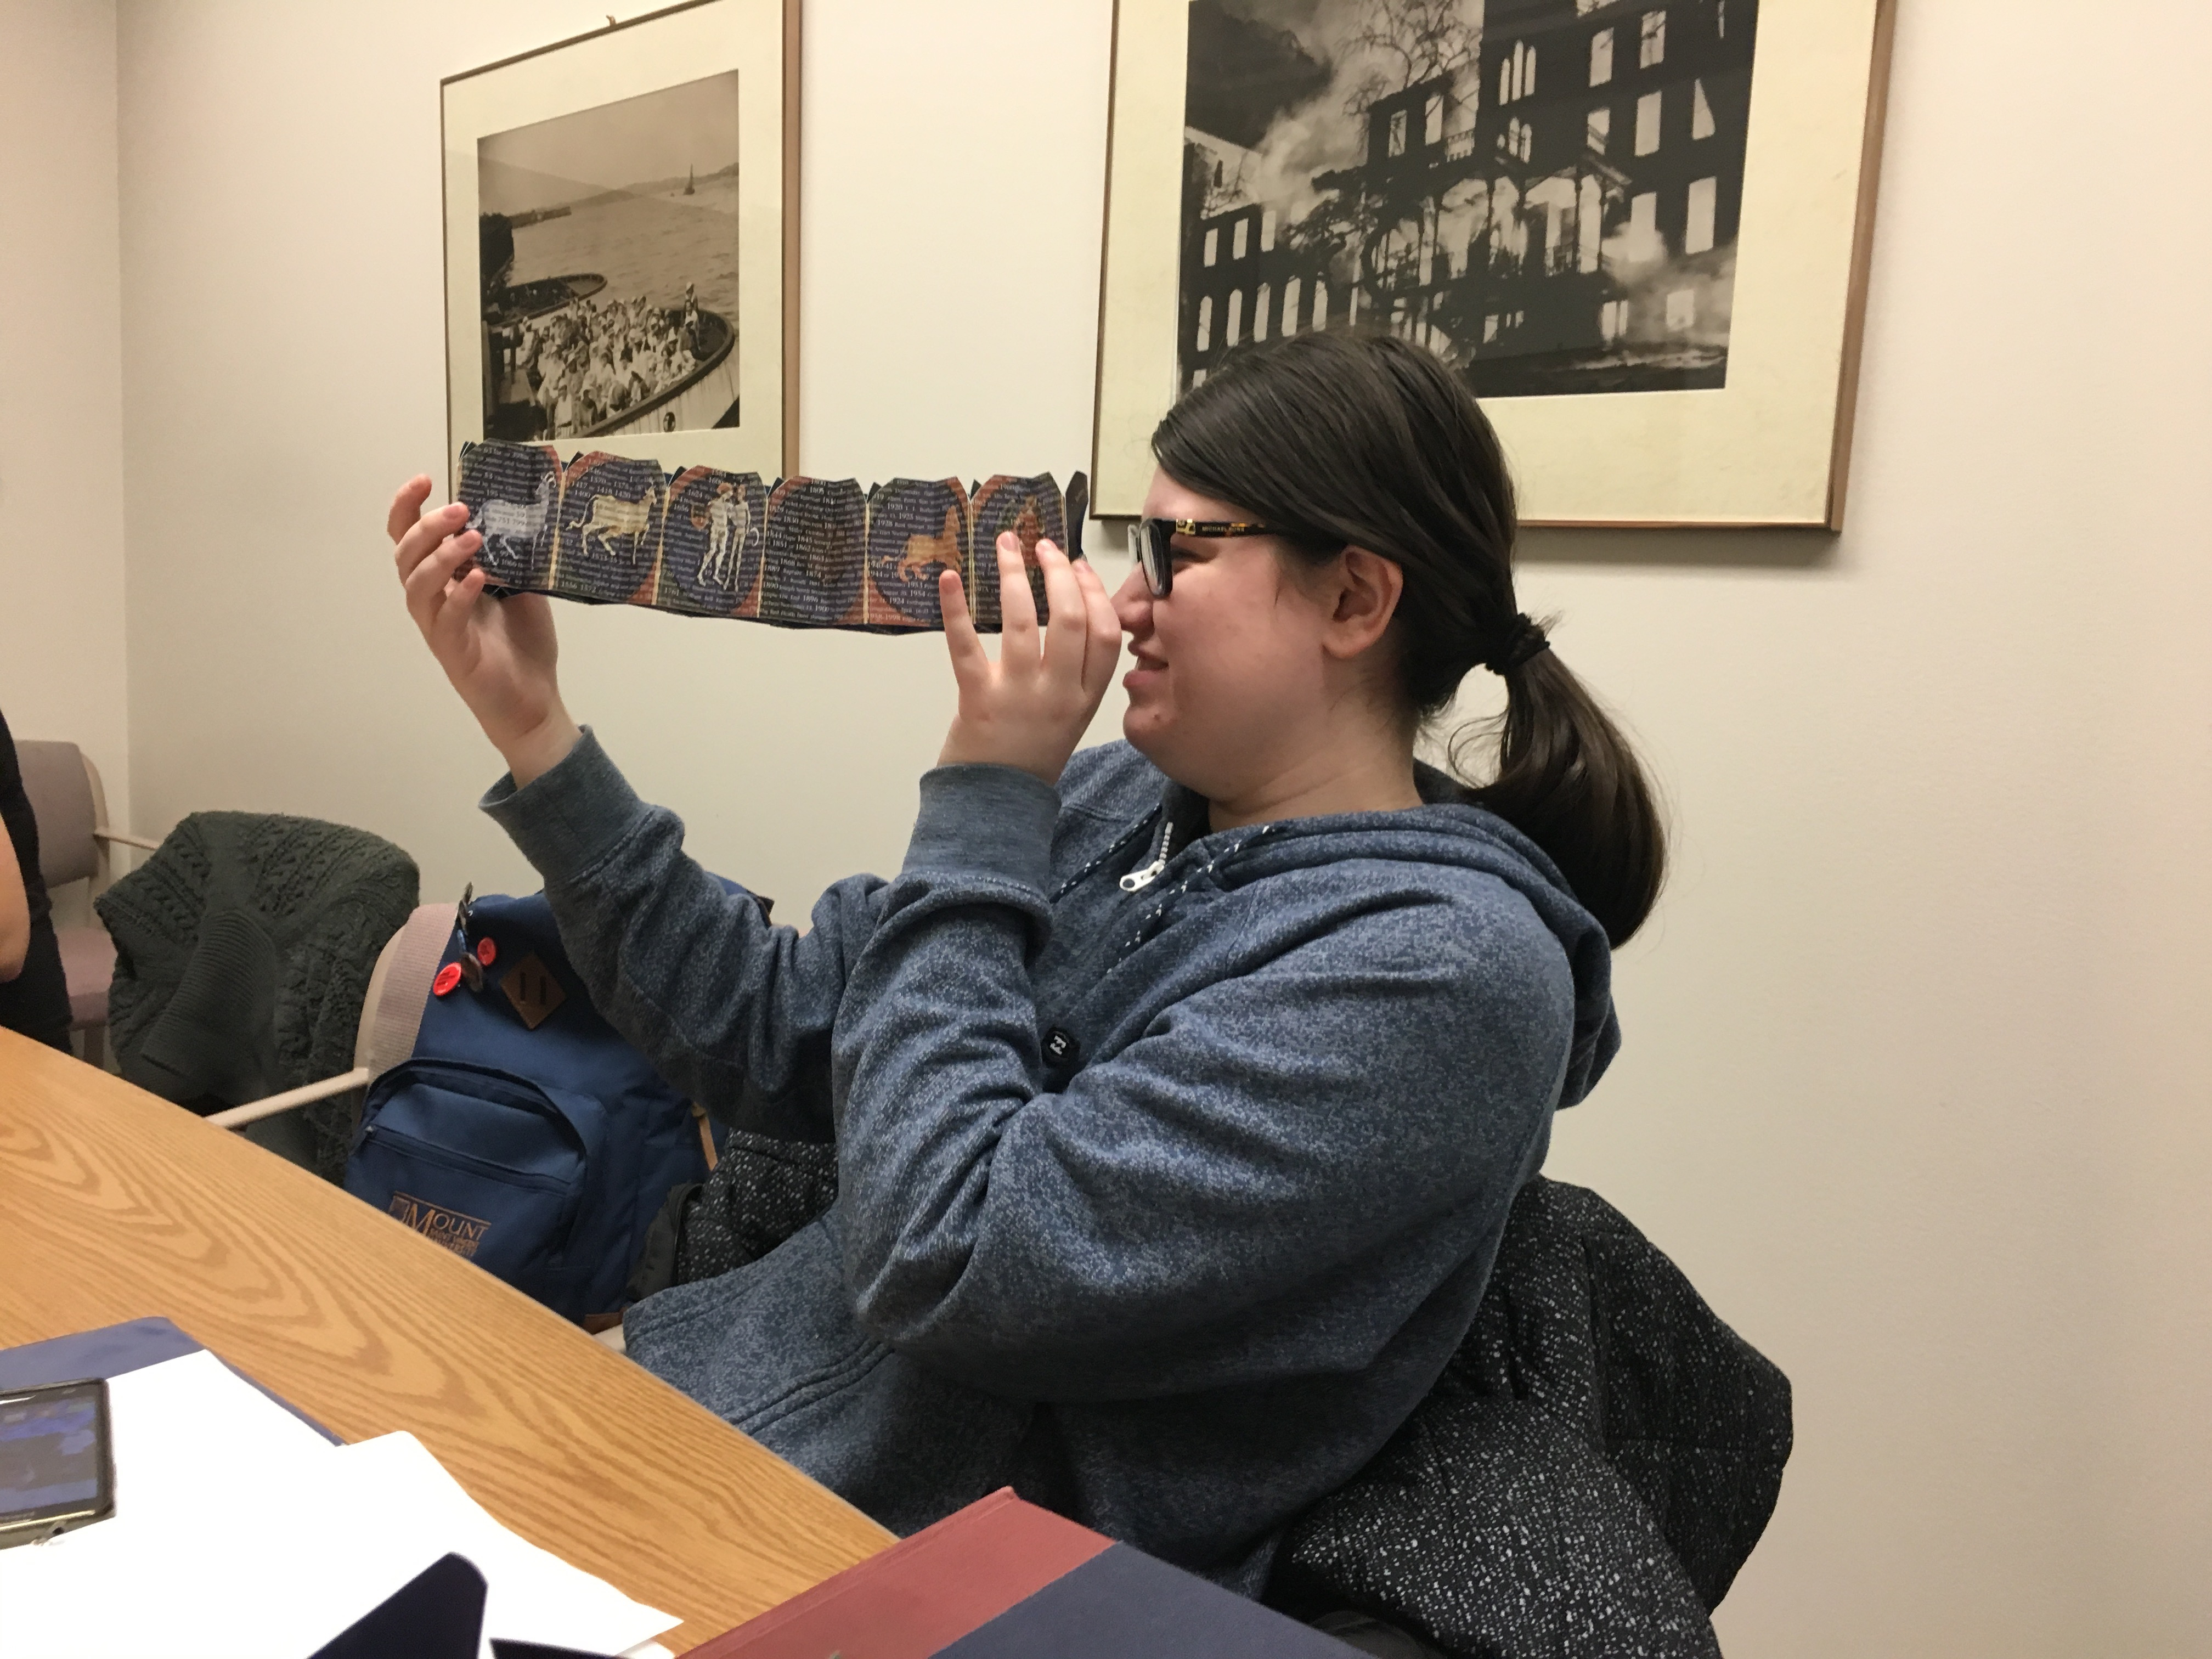 ENGL WRIT 2223 student Corrine MacLean examining a book